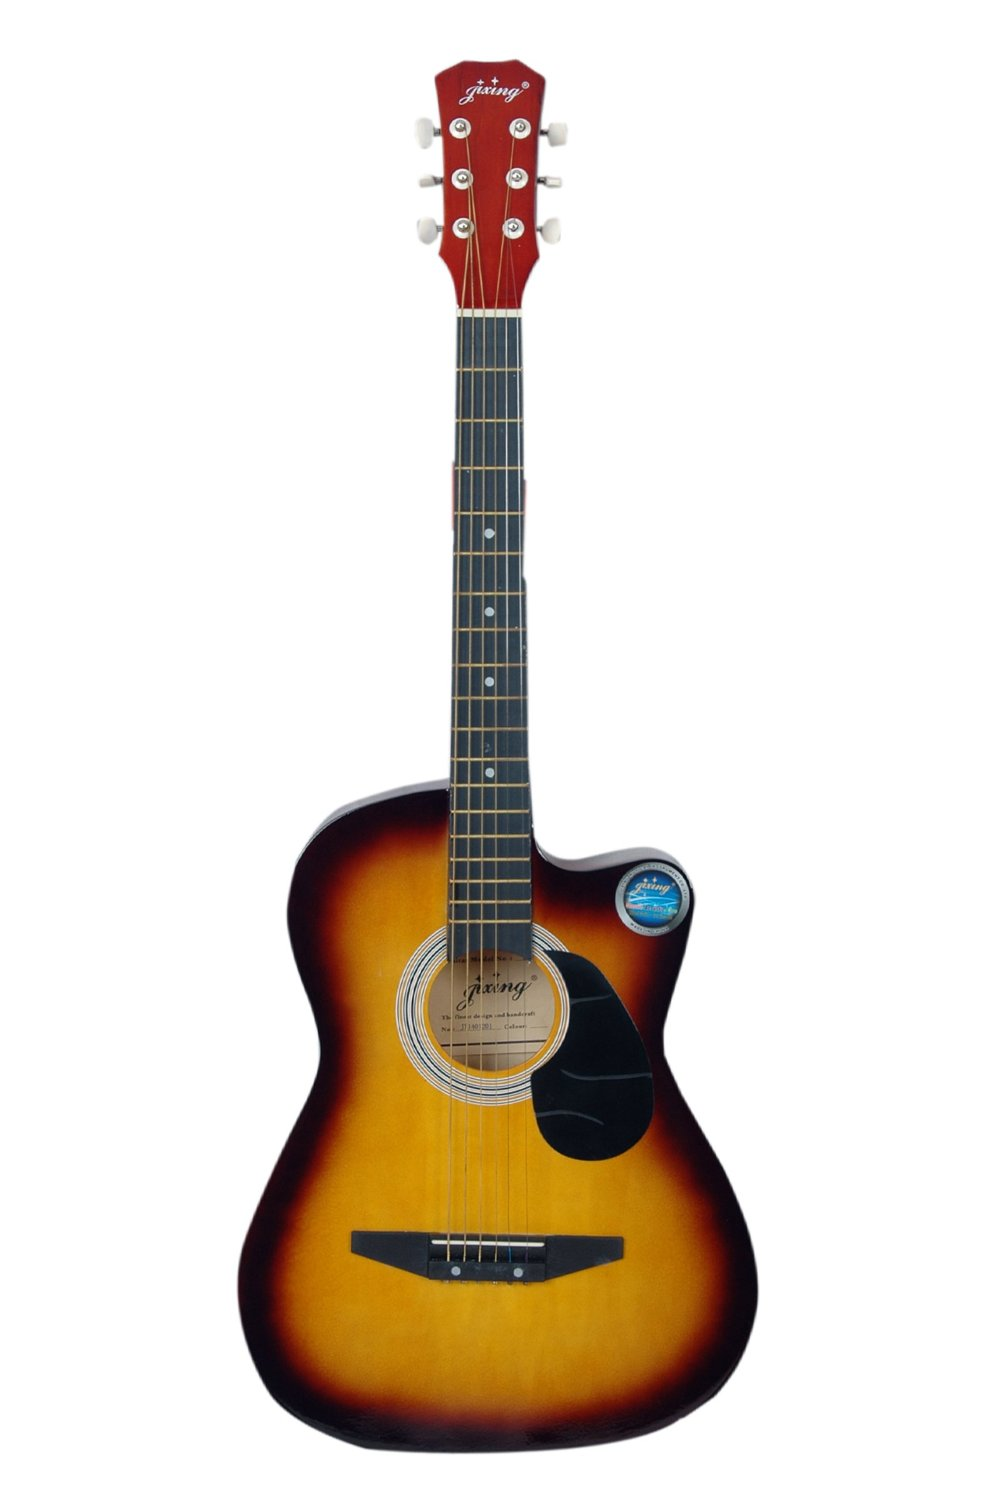 Jixing Acoustic Guitar, Sunburst available at ShopClues for Rs.2700